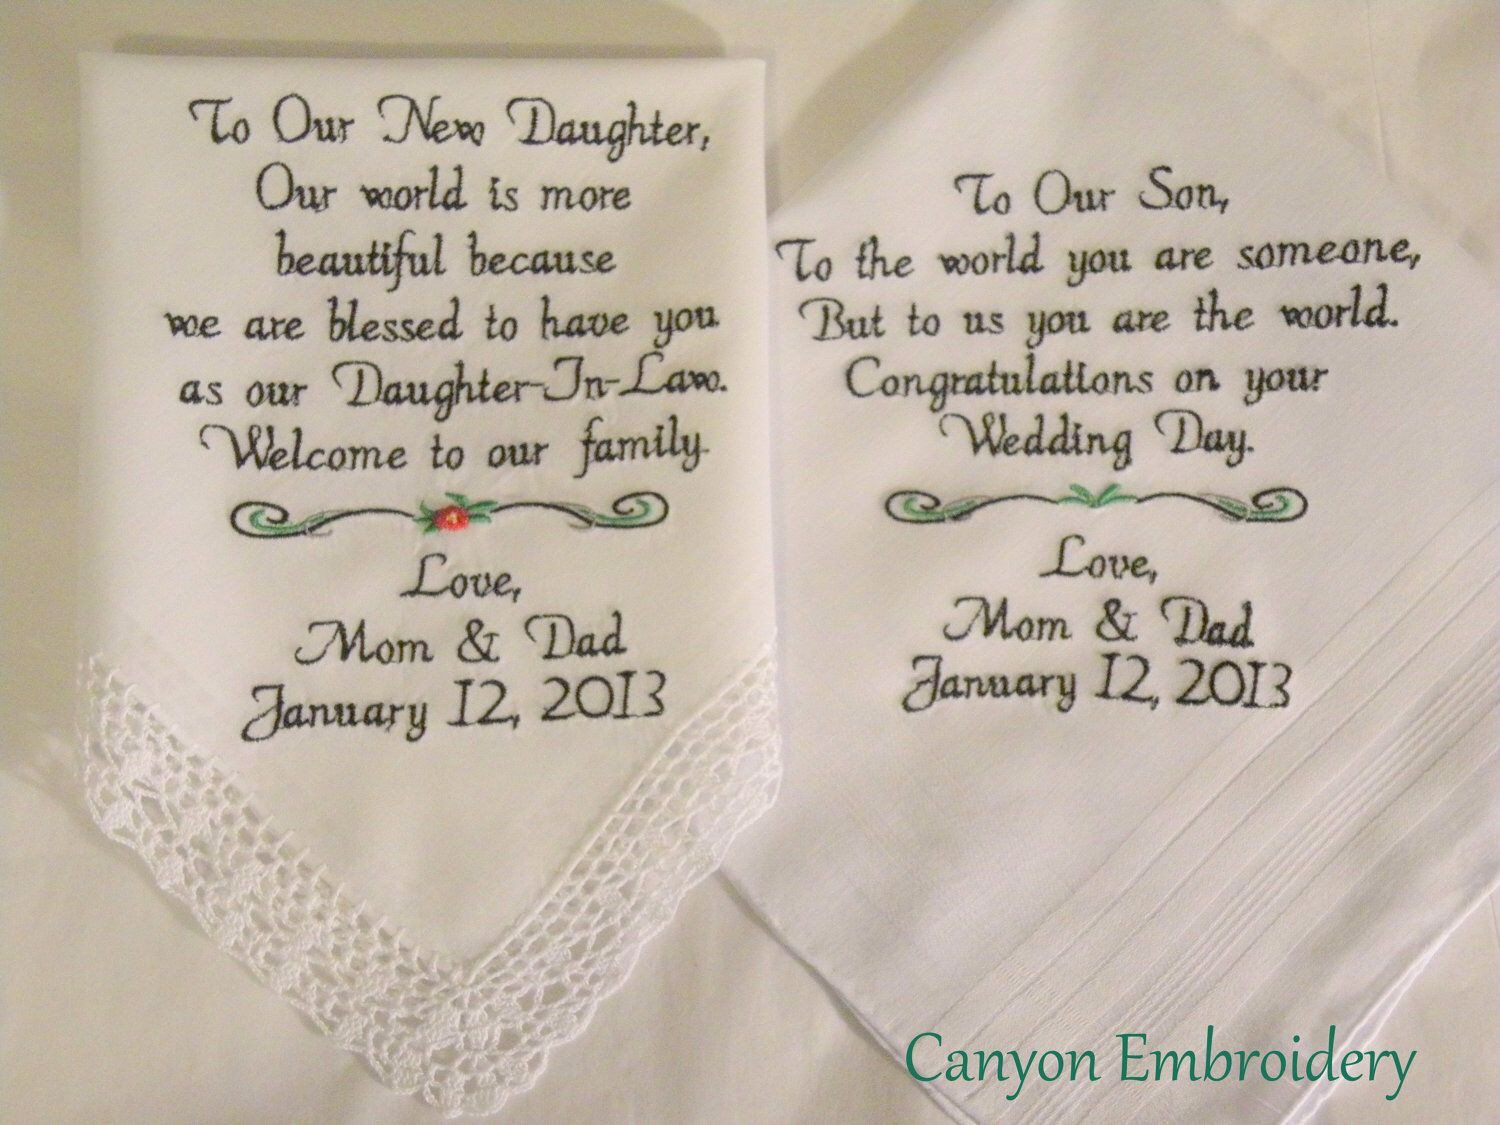 Best ideas about Wedding Gift Ideas For Daughter . Save or Pin New Daughter Son Wedding Gift From Mom and Dad to the Now.